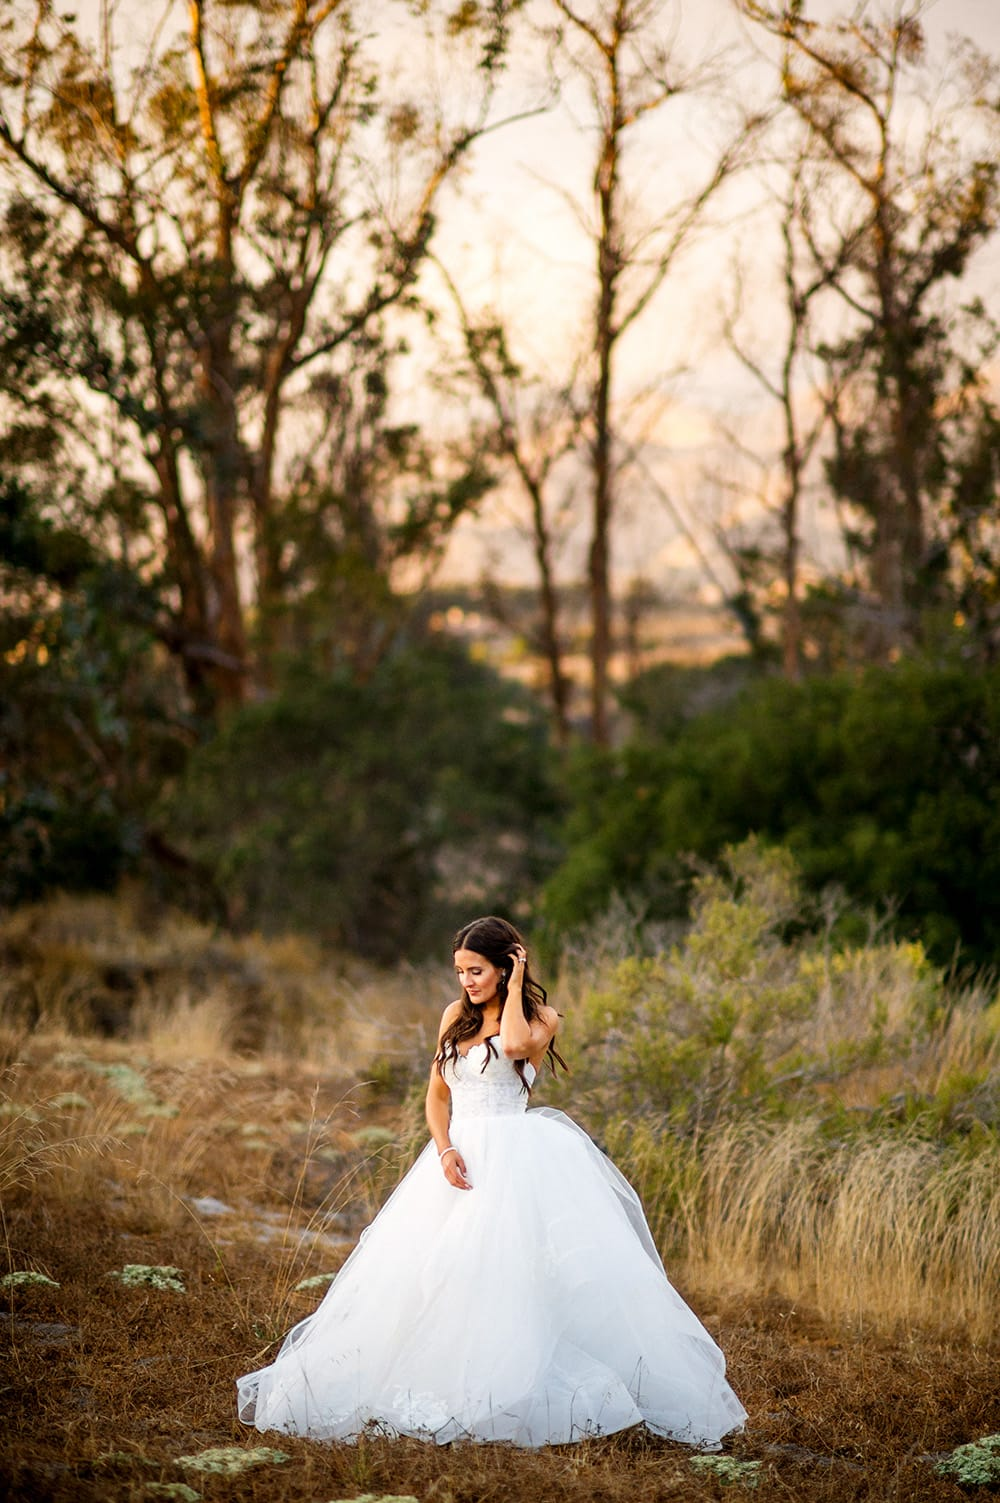 San Luis Obispo Wedding Photographer - Bluephoto Wedding Photography